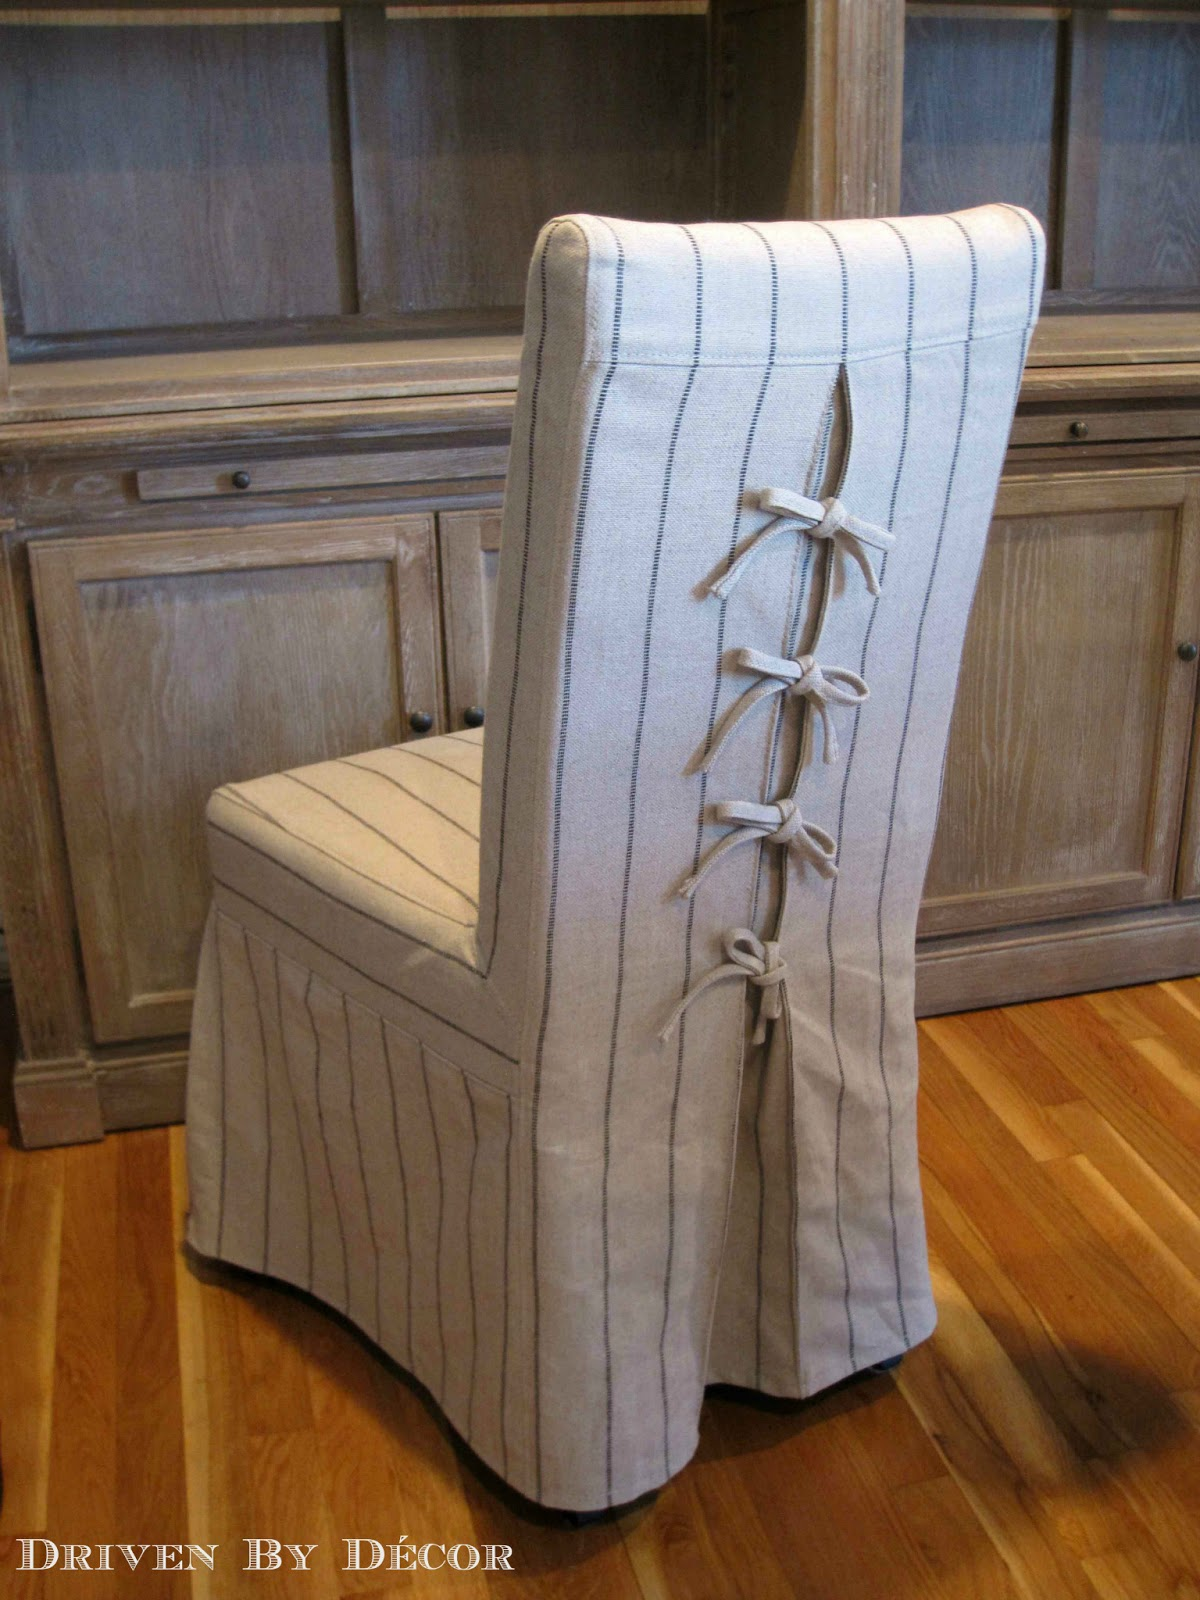 White Slip Covers For Dining Room Chairs Gym Ball As Desk Chair Dress Up Your Corseted Slipcovers Driven